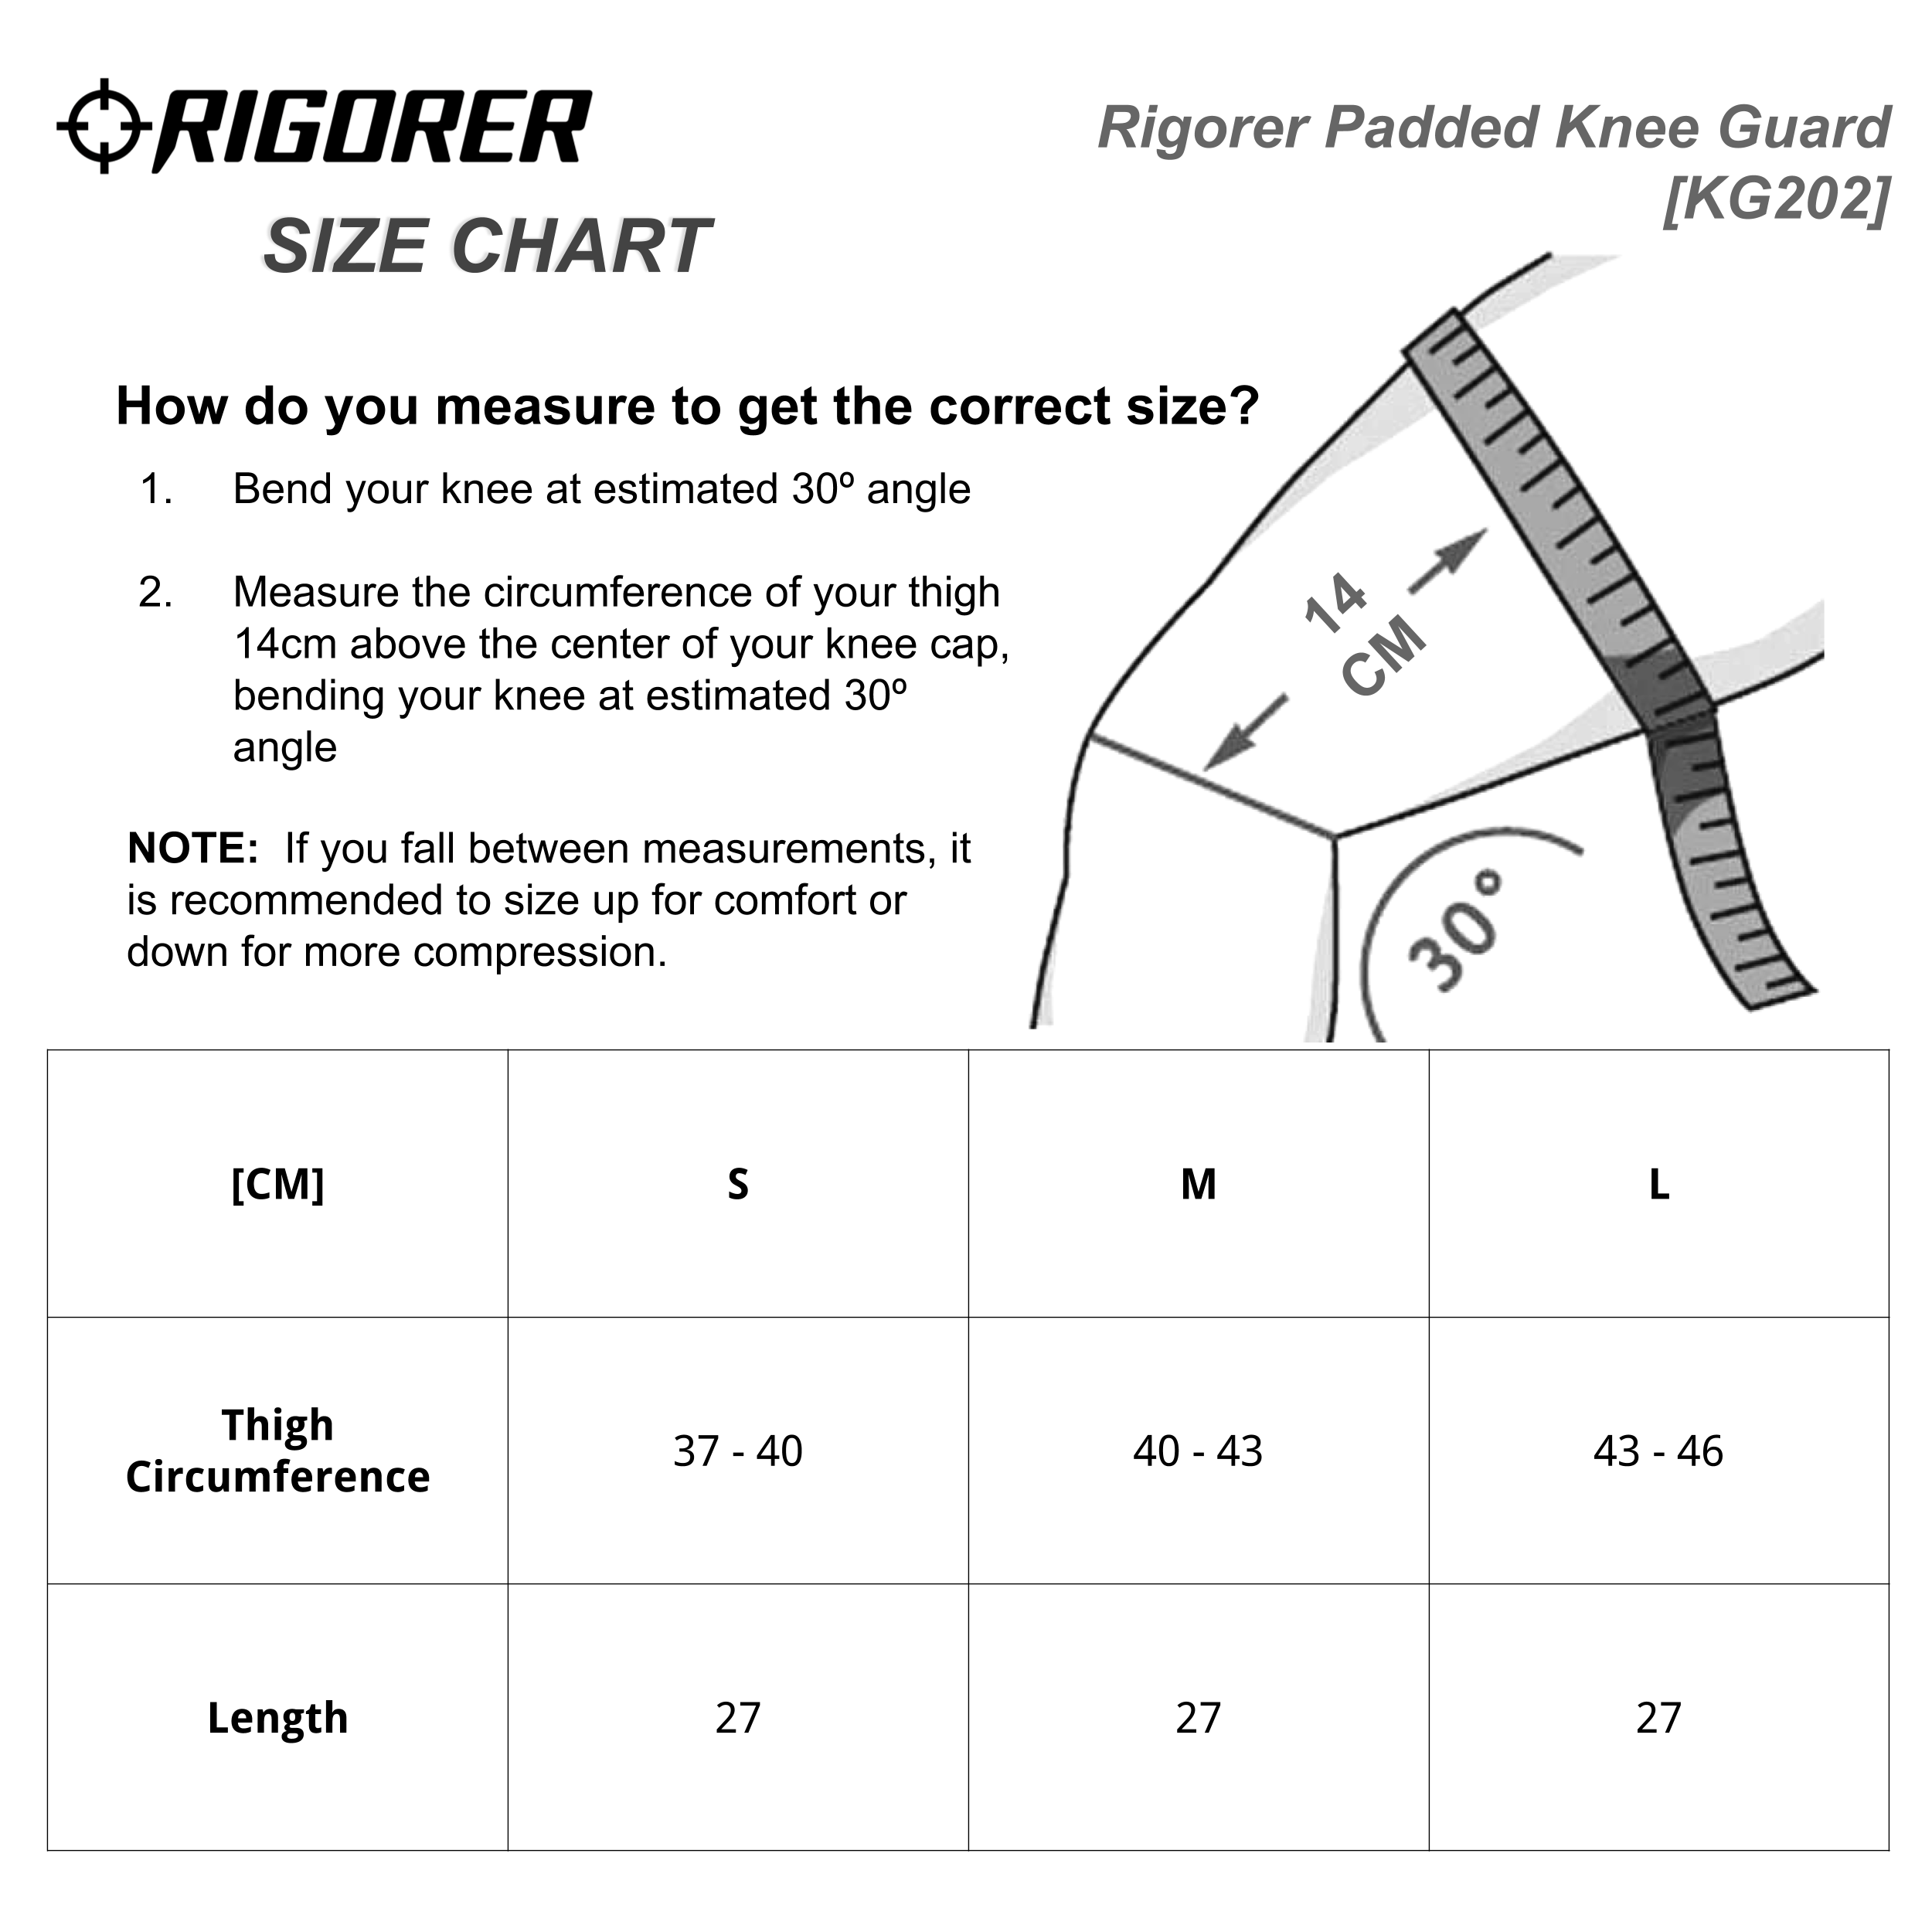 Rigorer Padded Knee Guard [KG202] Sizing Chart